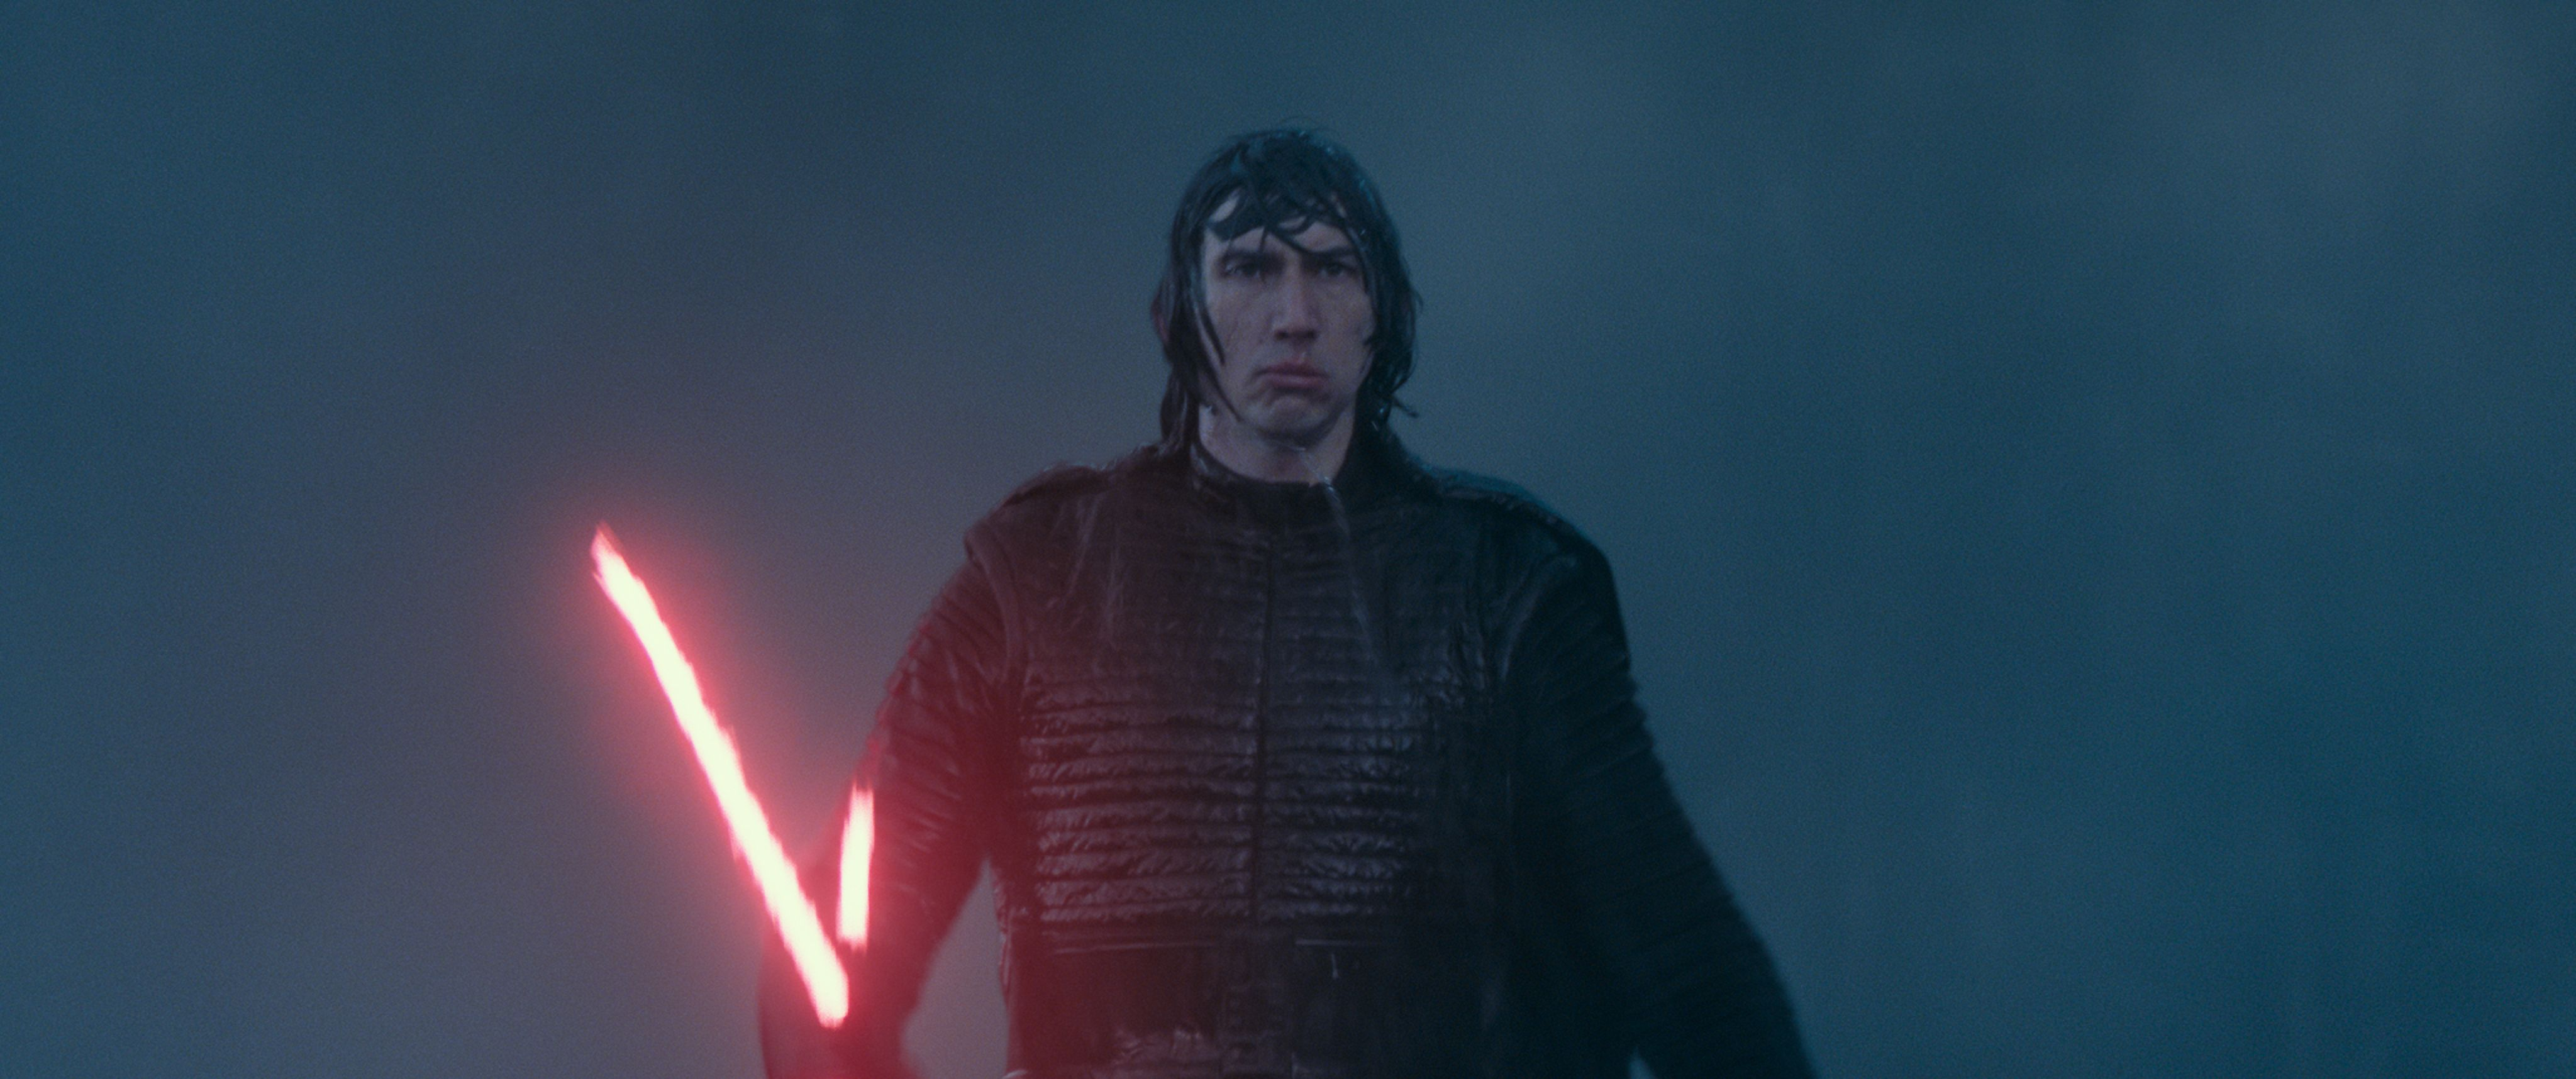 star wars 9 images reveal rey  kylo ren  finn  poe  and space horses